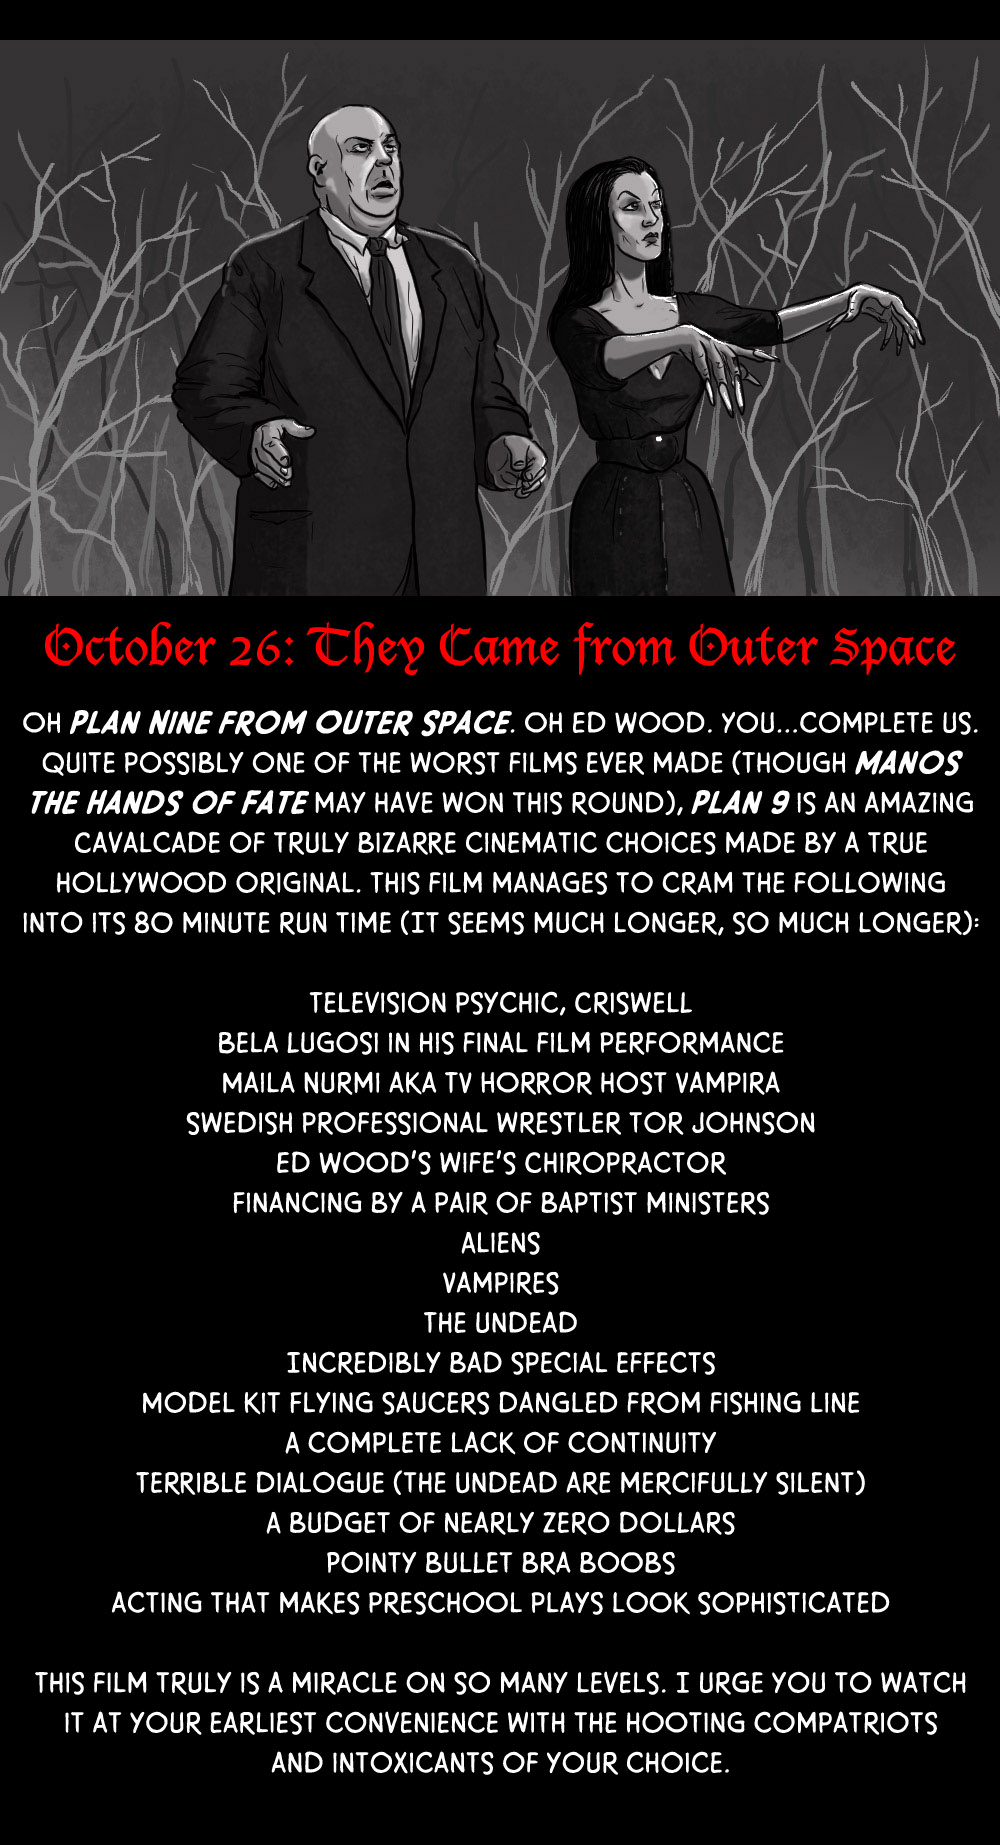 October 26: They Came from Outer Space (With a Plan 9)